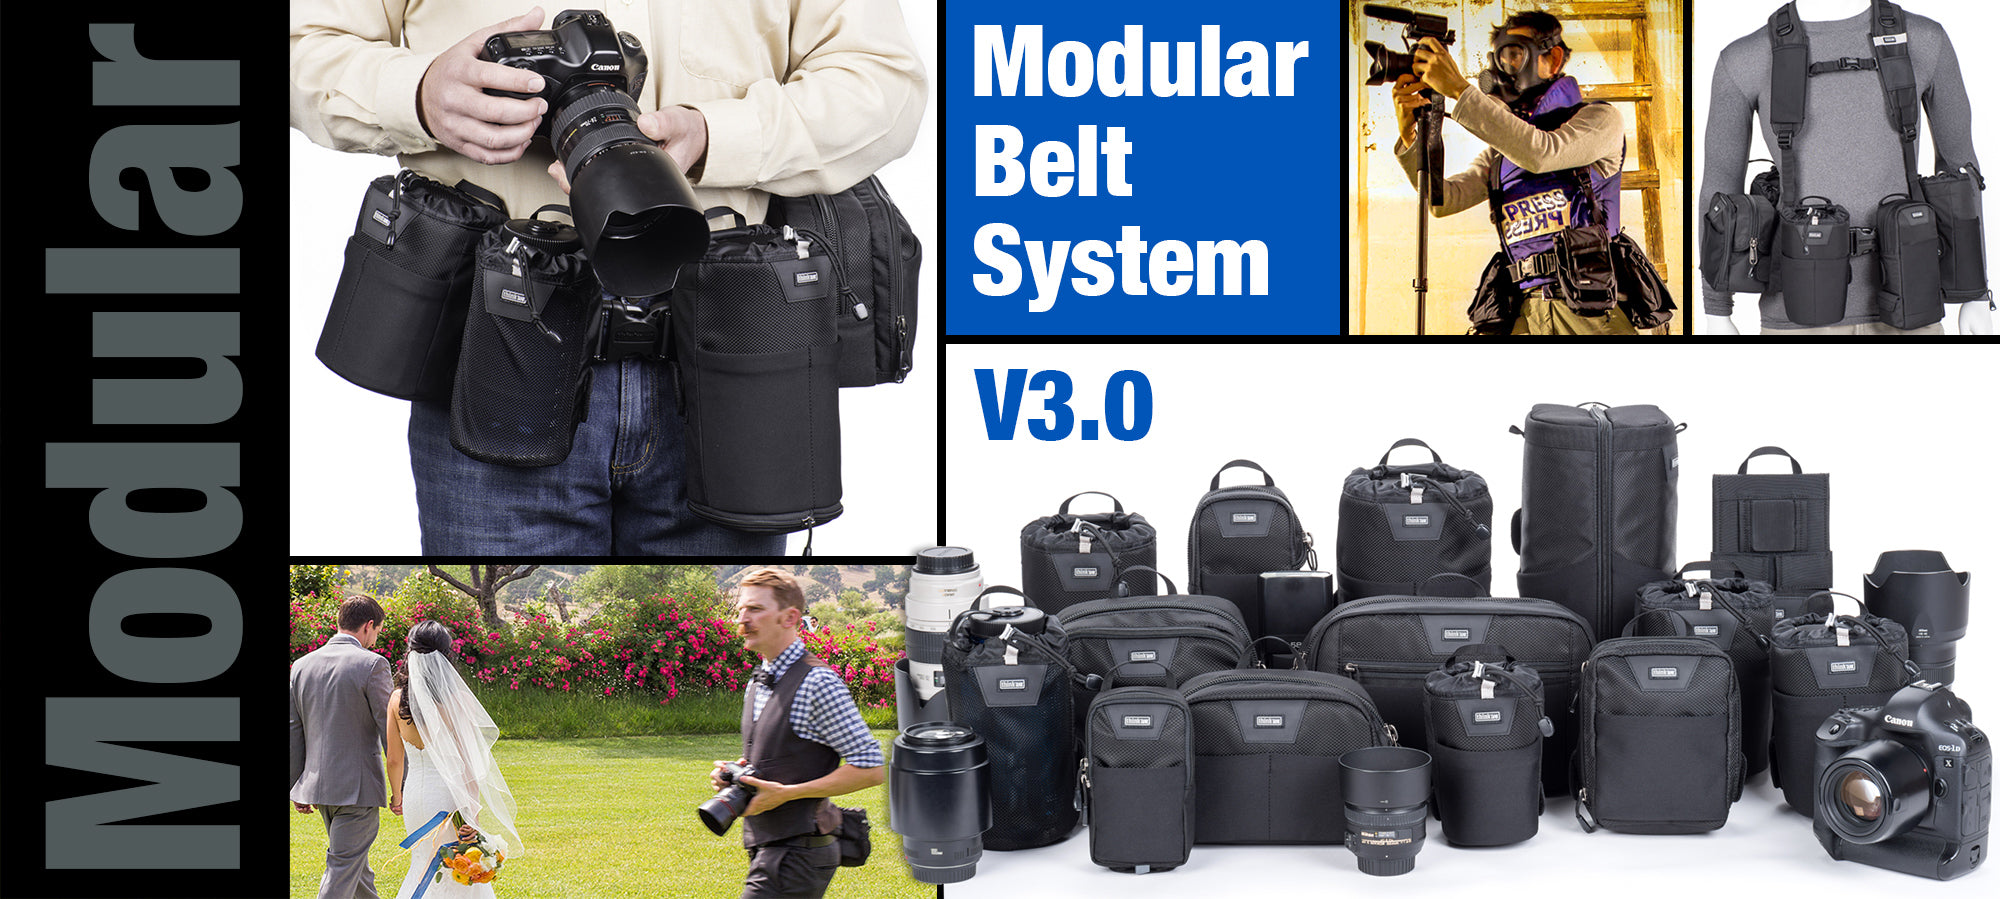 The Modular Belt System moves weight from your shoulders to your waist for more comfortable all-day carry